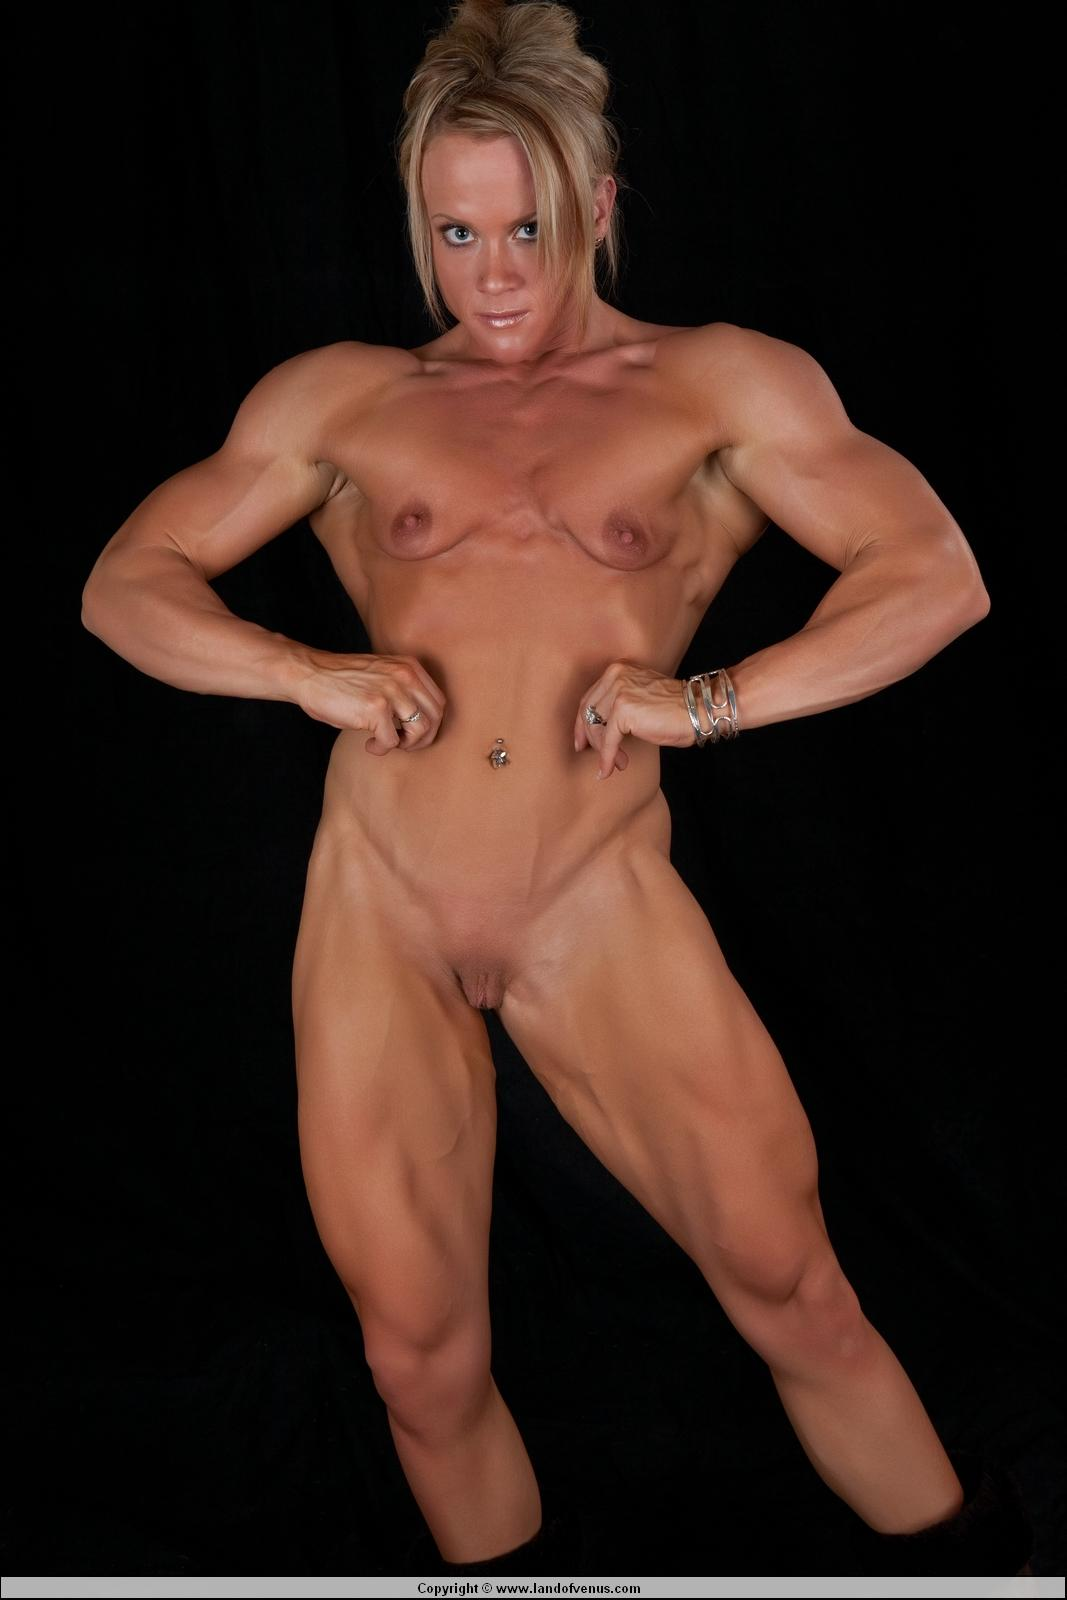 Assured, sexy naked women bodybuilders